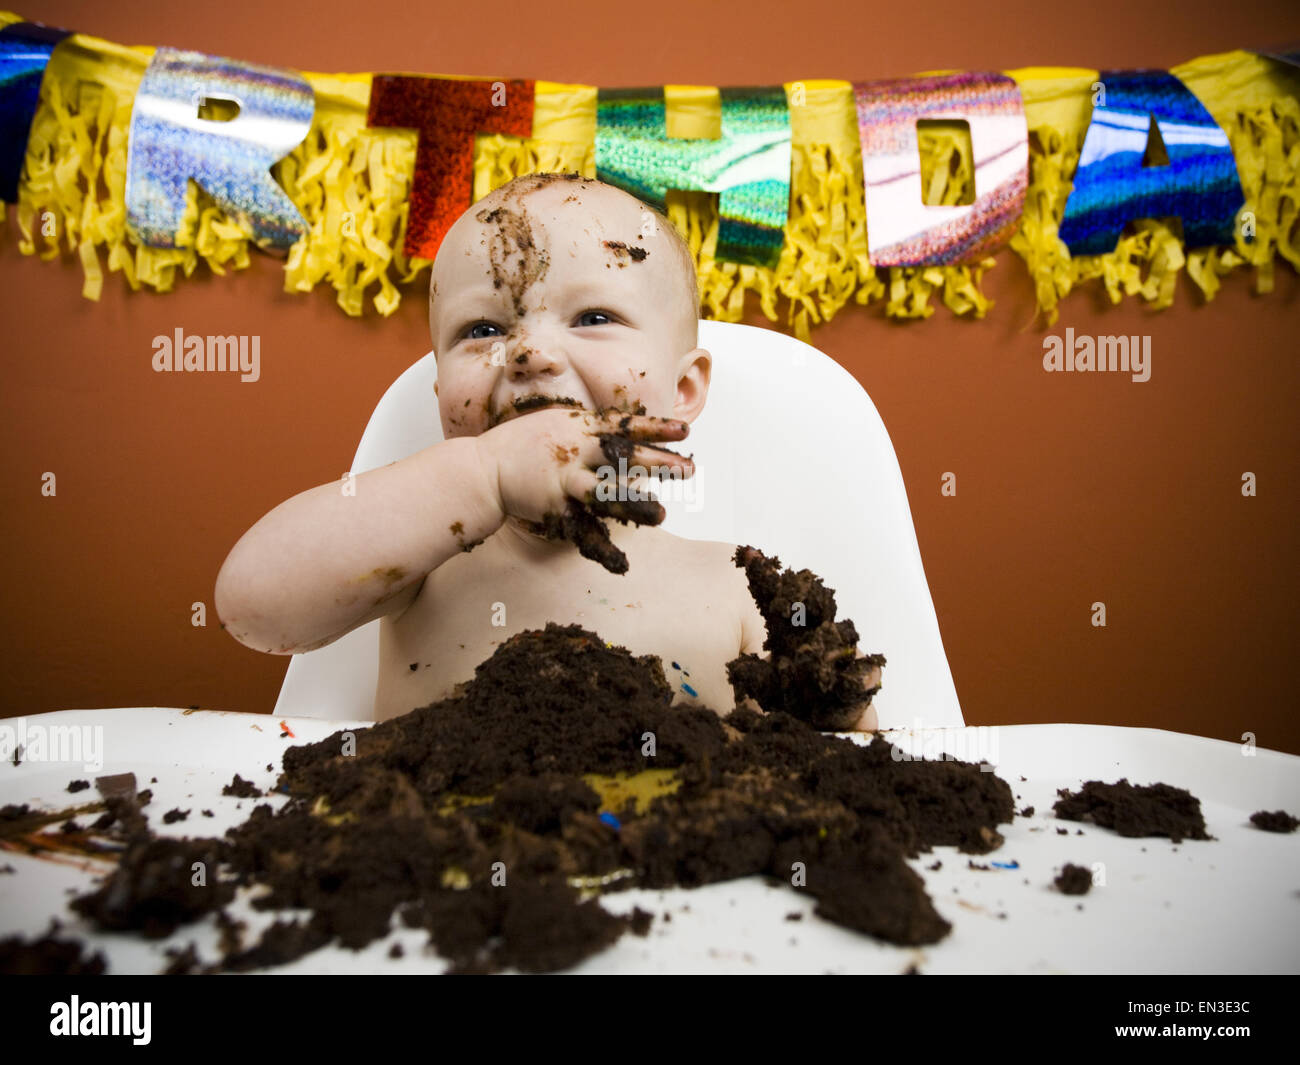 Baby eating birthday cake Stock Photo, Royalty Free Image: 81826176 ...